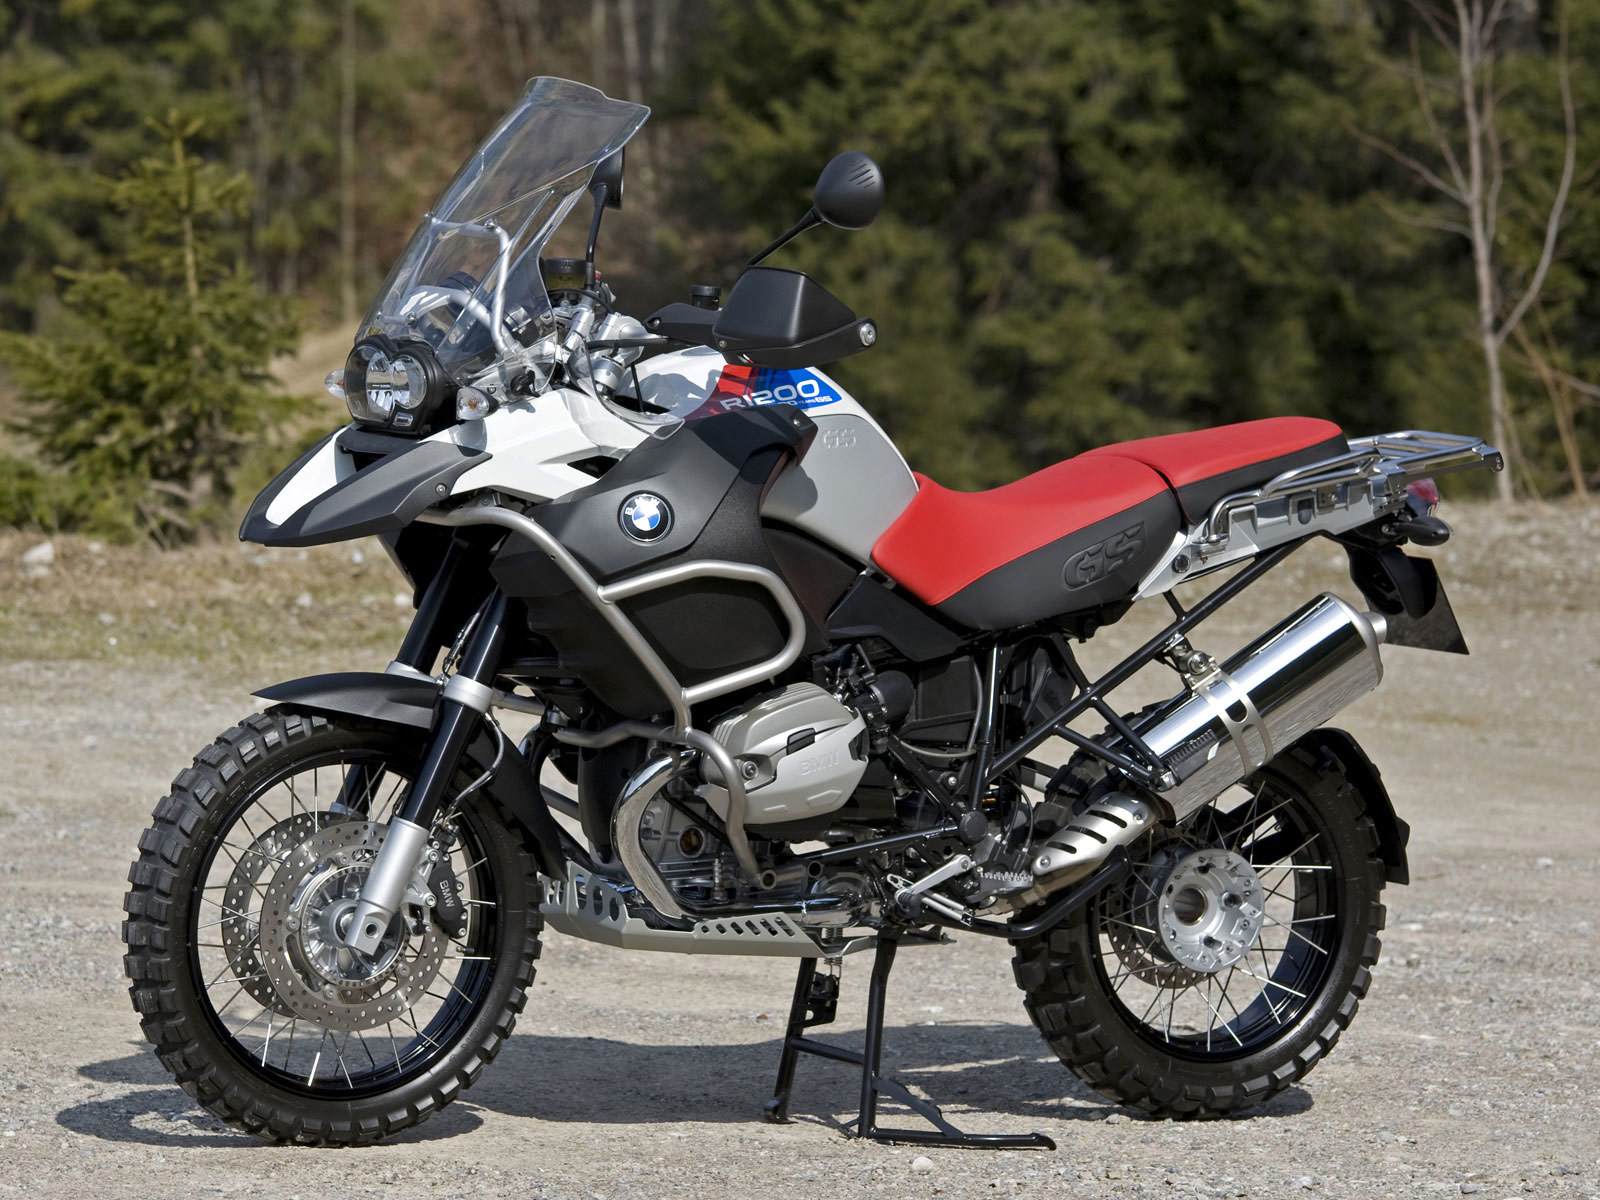 MOTORCYCLE BIG BIKE  2010 BMW R1200GS Adventure 30 Years GS